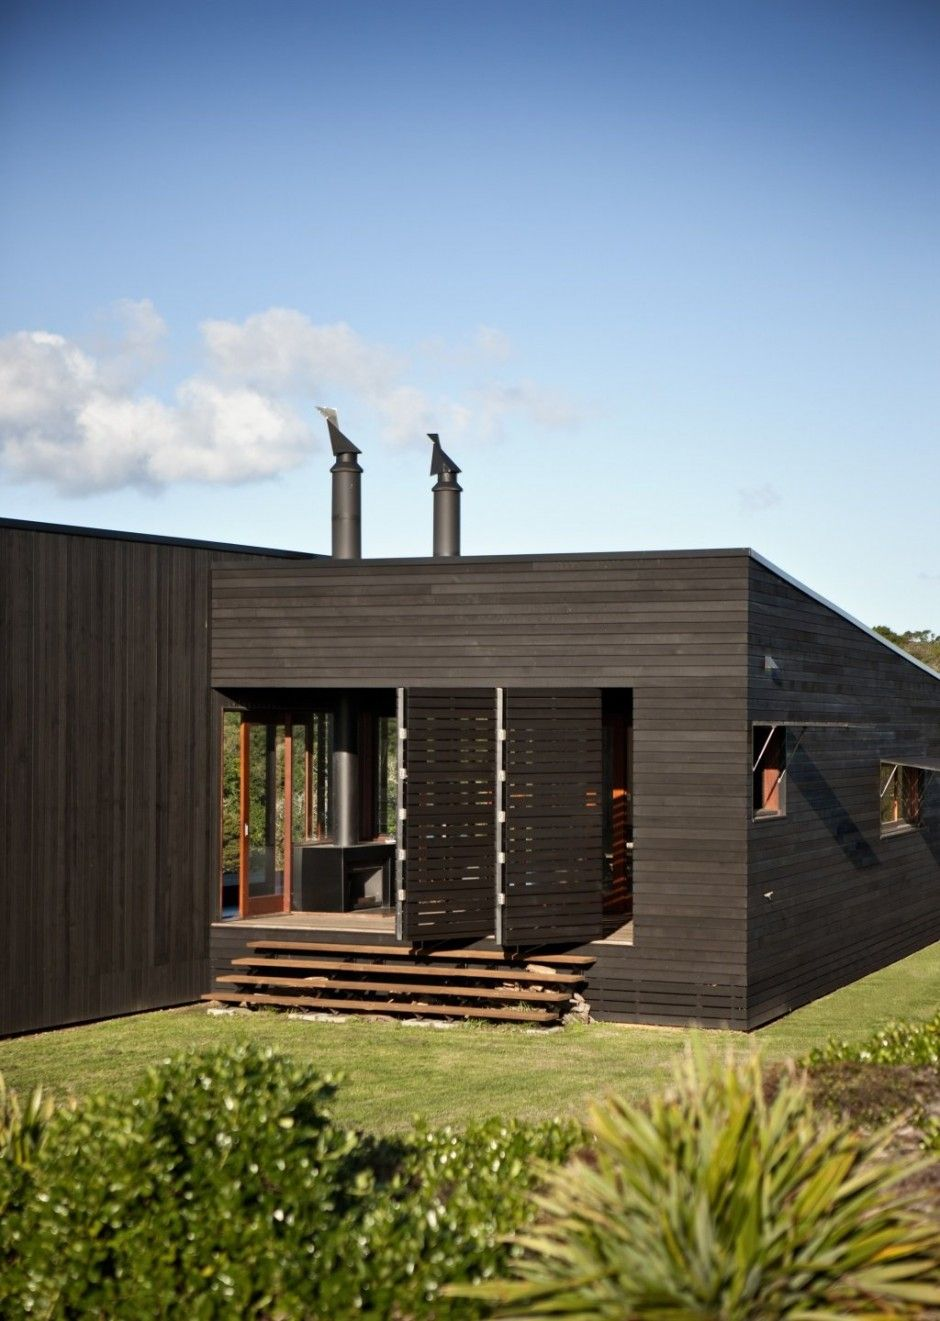 Crosson clarke carnachan architects designed the tutukaka - Architect designed modular homes nz ...